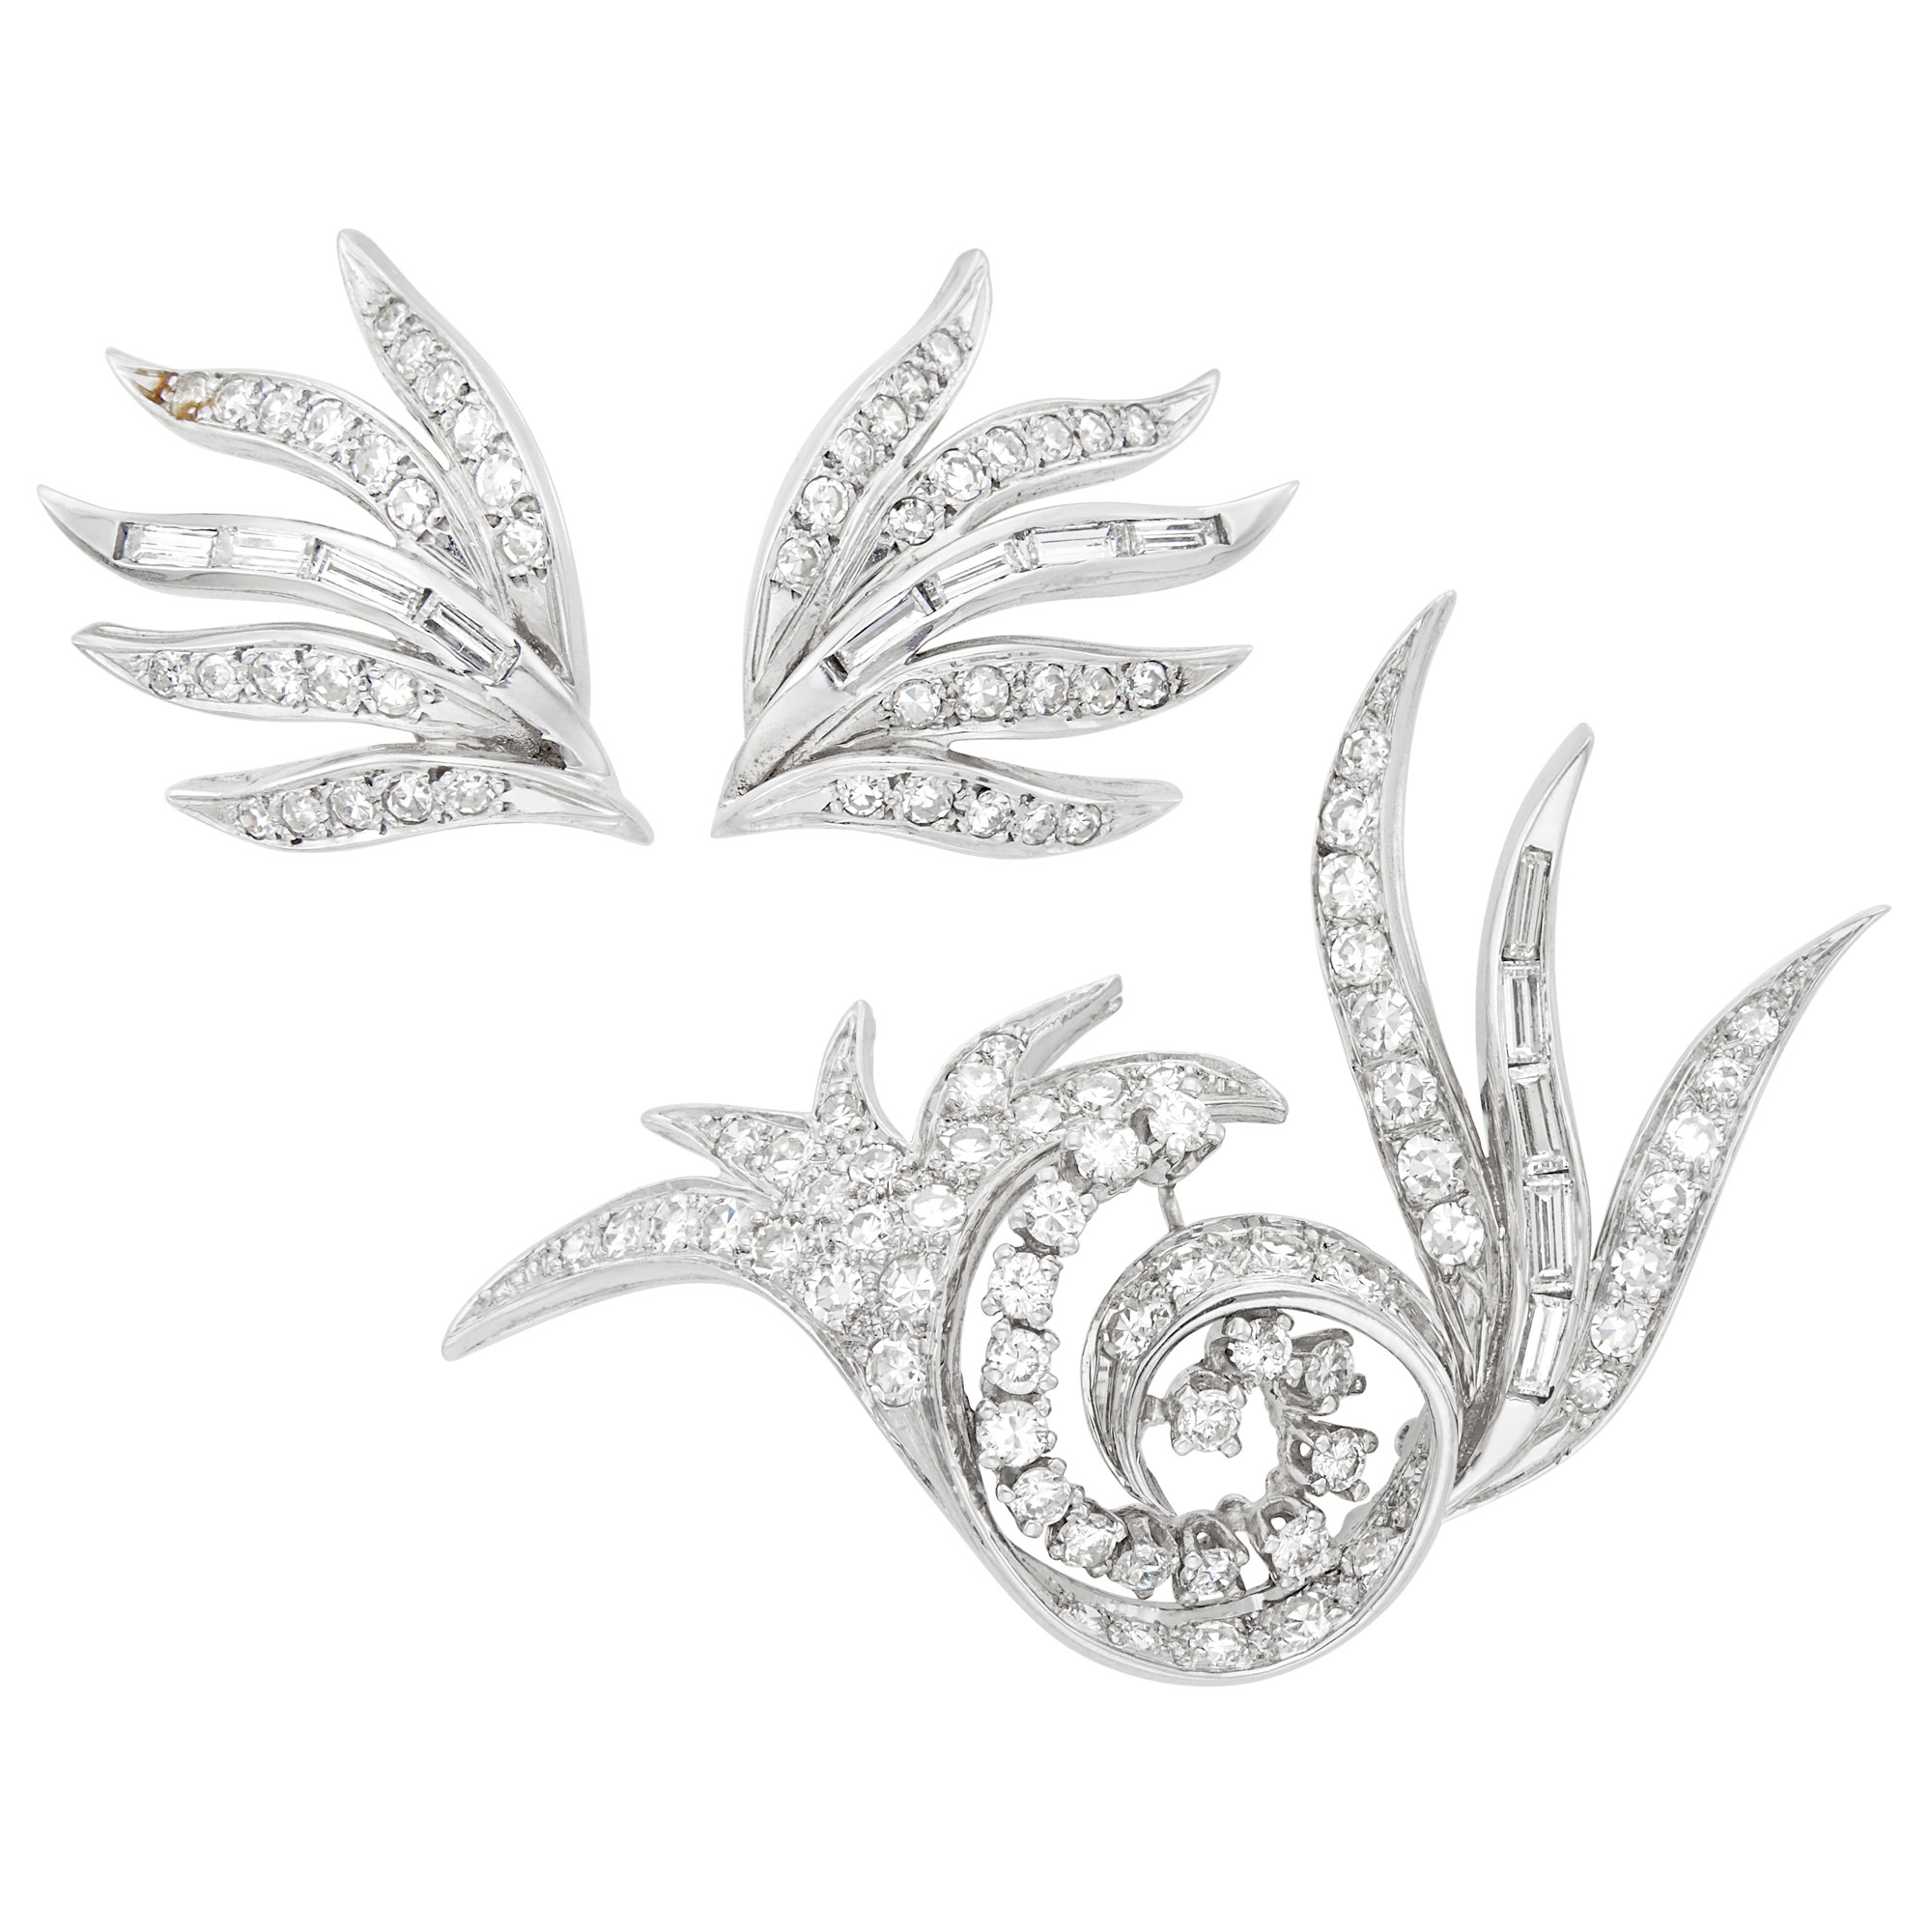 Lot image - White Gold and Diamond Spray Brooch and Pair of Earclips